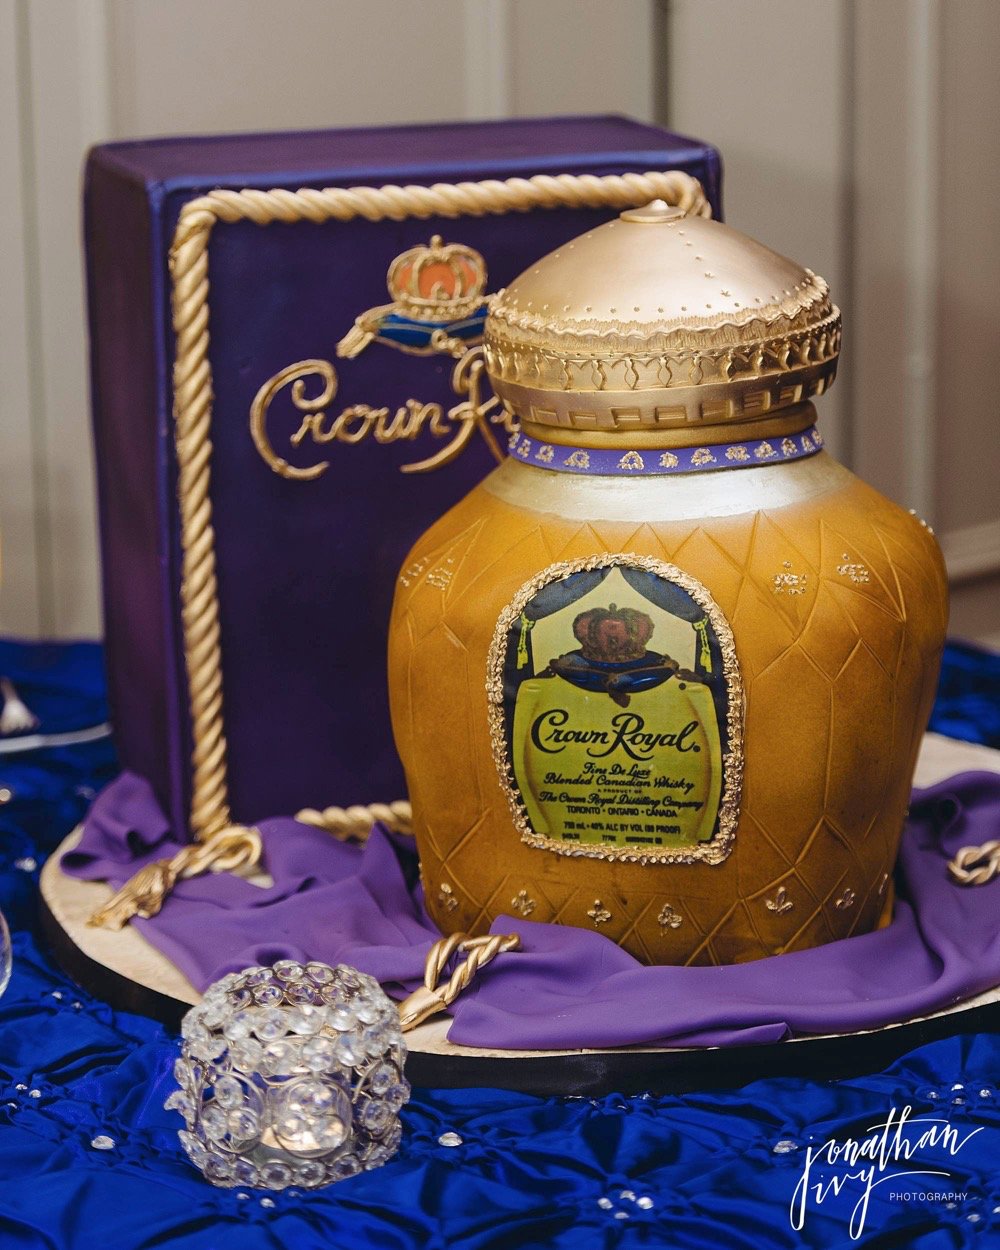 Crown Royal Grooms Cake Shaped like Crown Royal